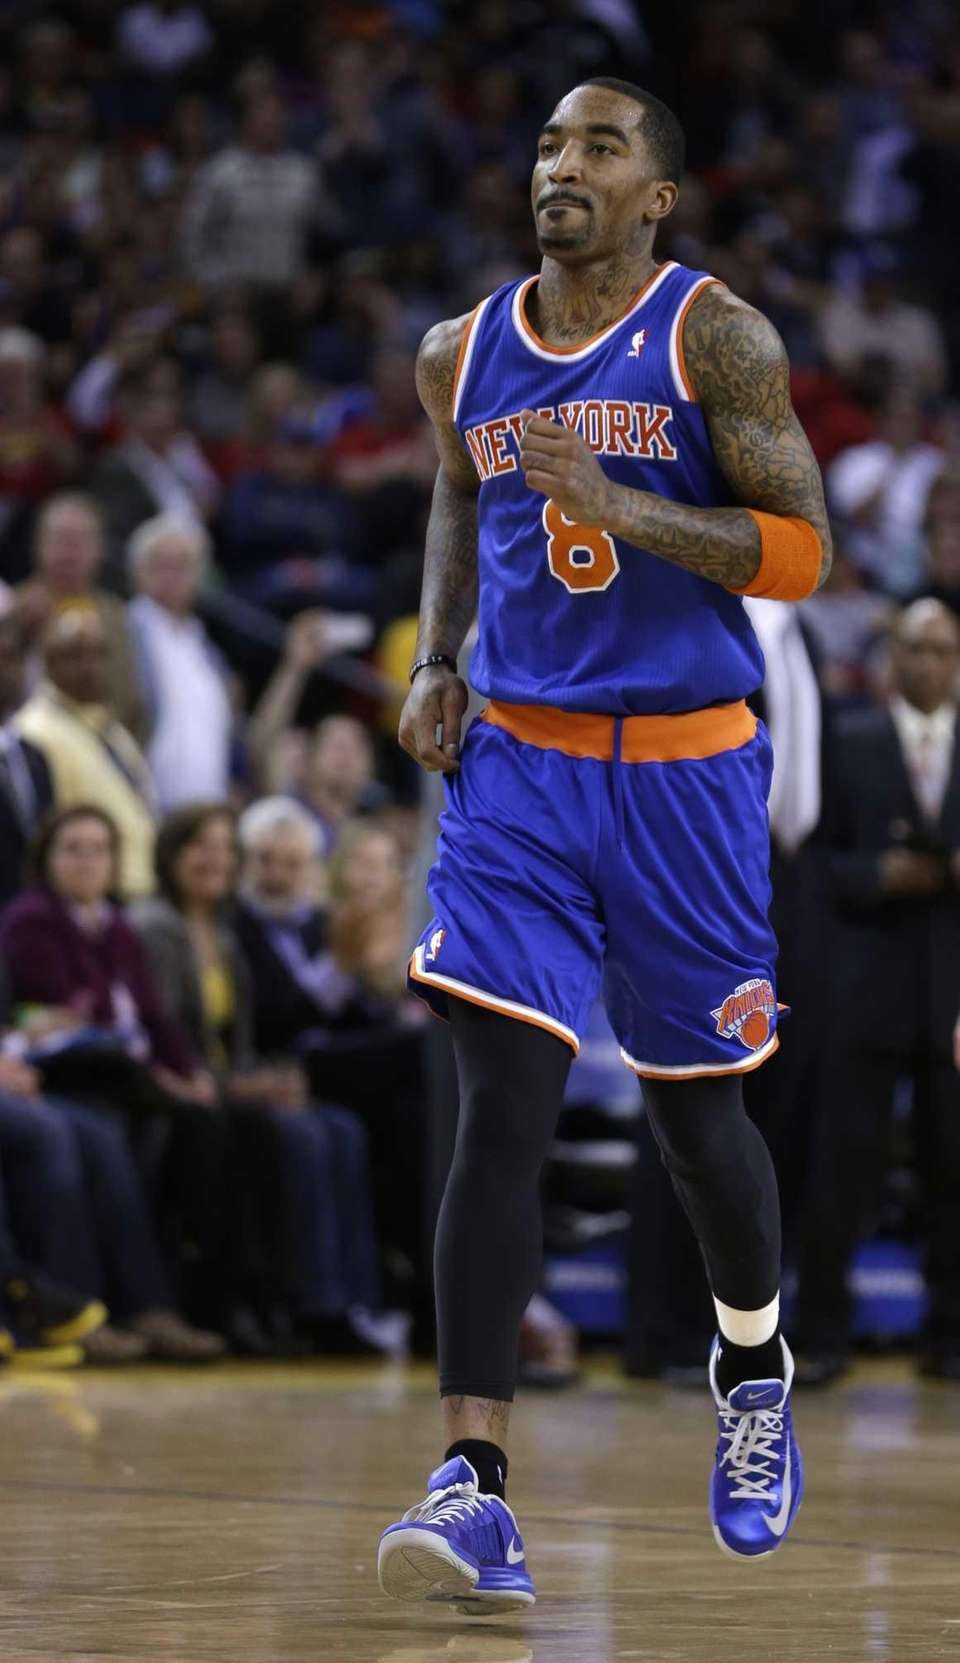 J.R. Smith leaves the court after being ejected